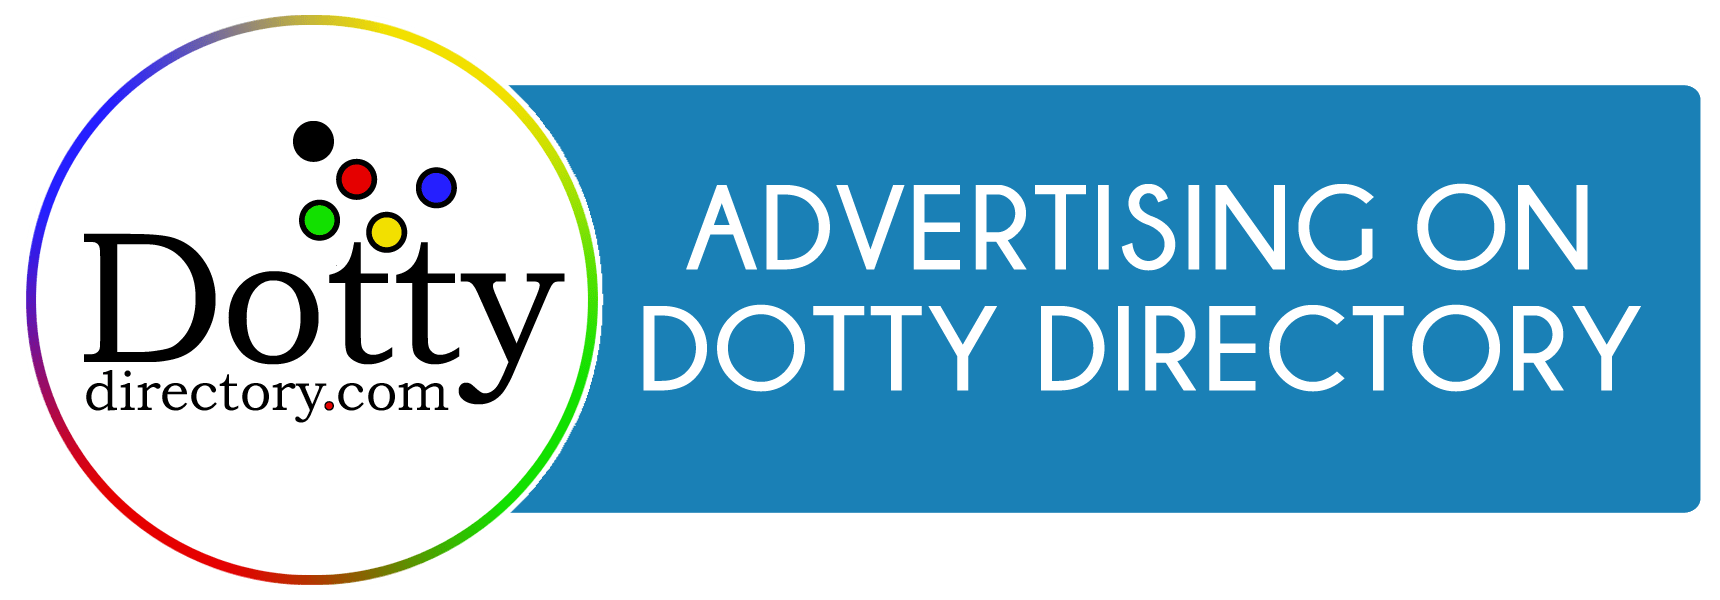 dotty-directory